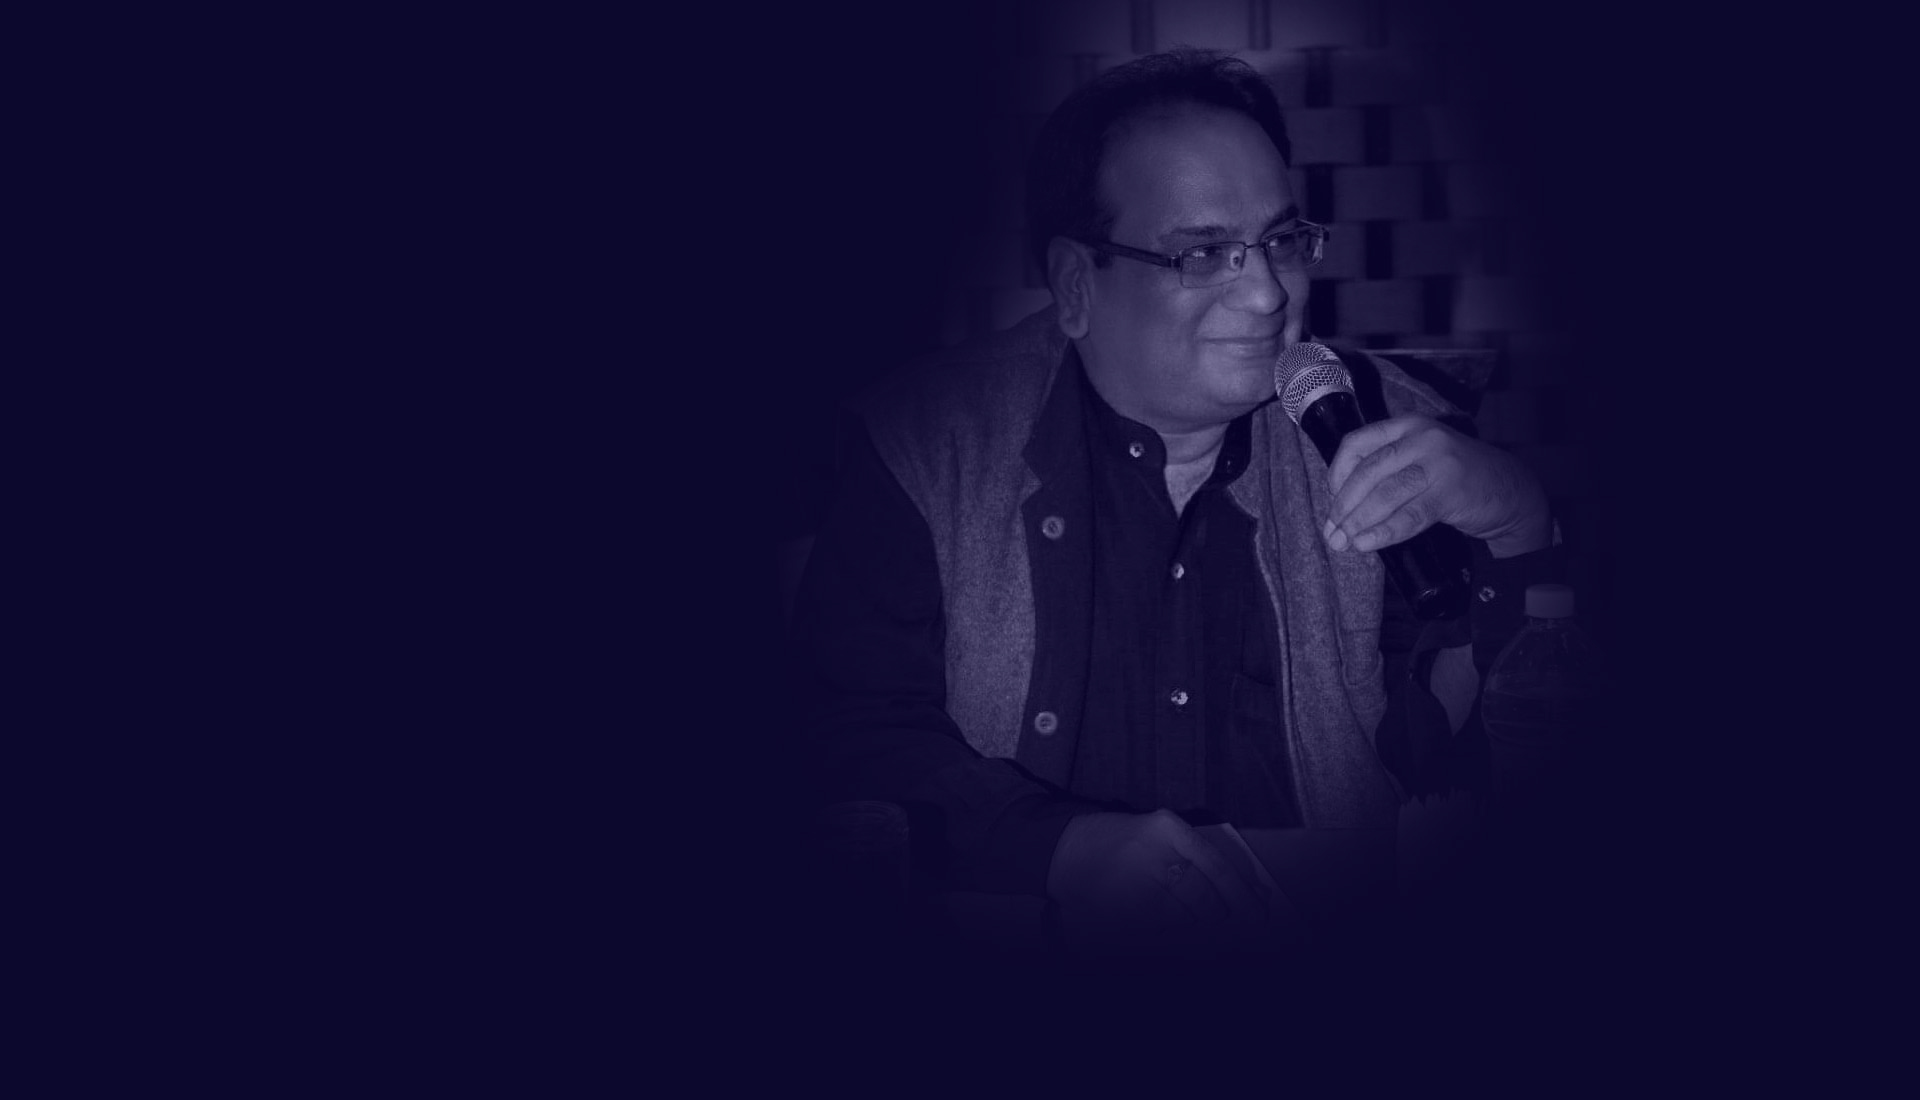 Lalit Berry Author & Writer